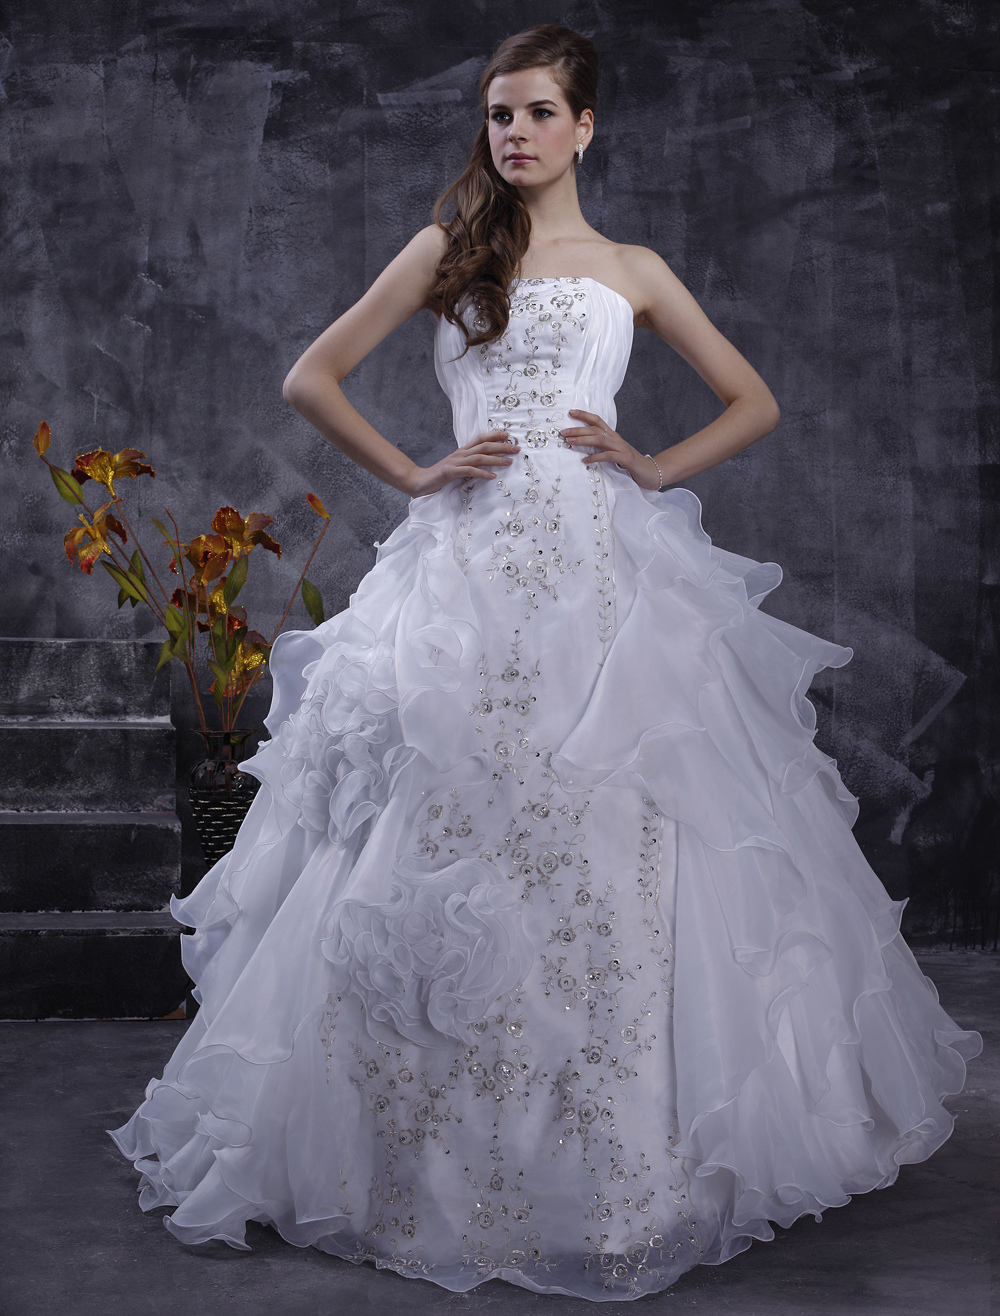 White Wedding Dresses Strapless Organza Bridal Gown Ruffles Tiered Lace Embroidered Sequin Floor Length Wedding Gown